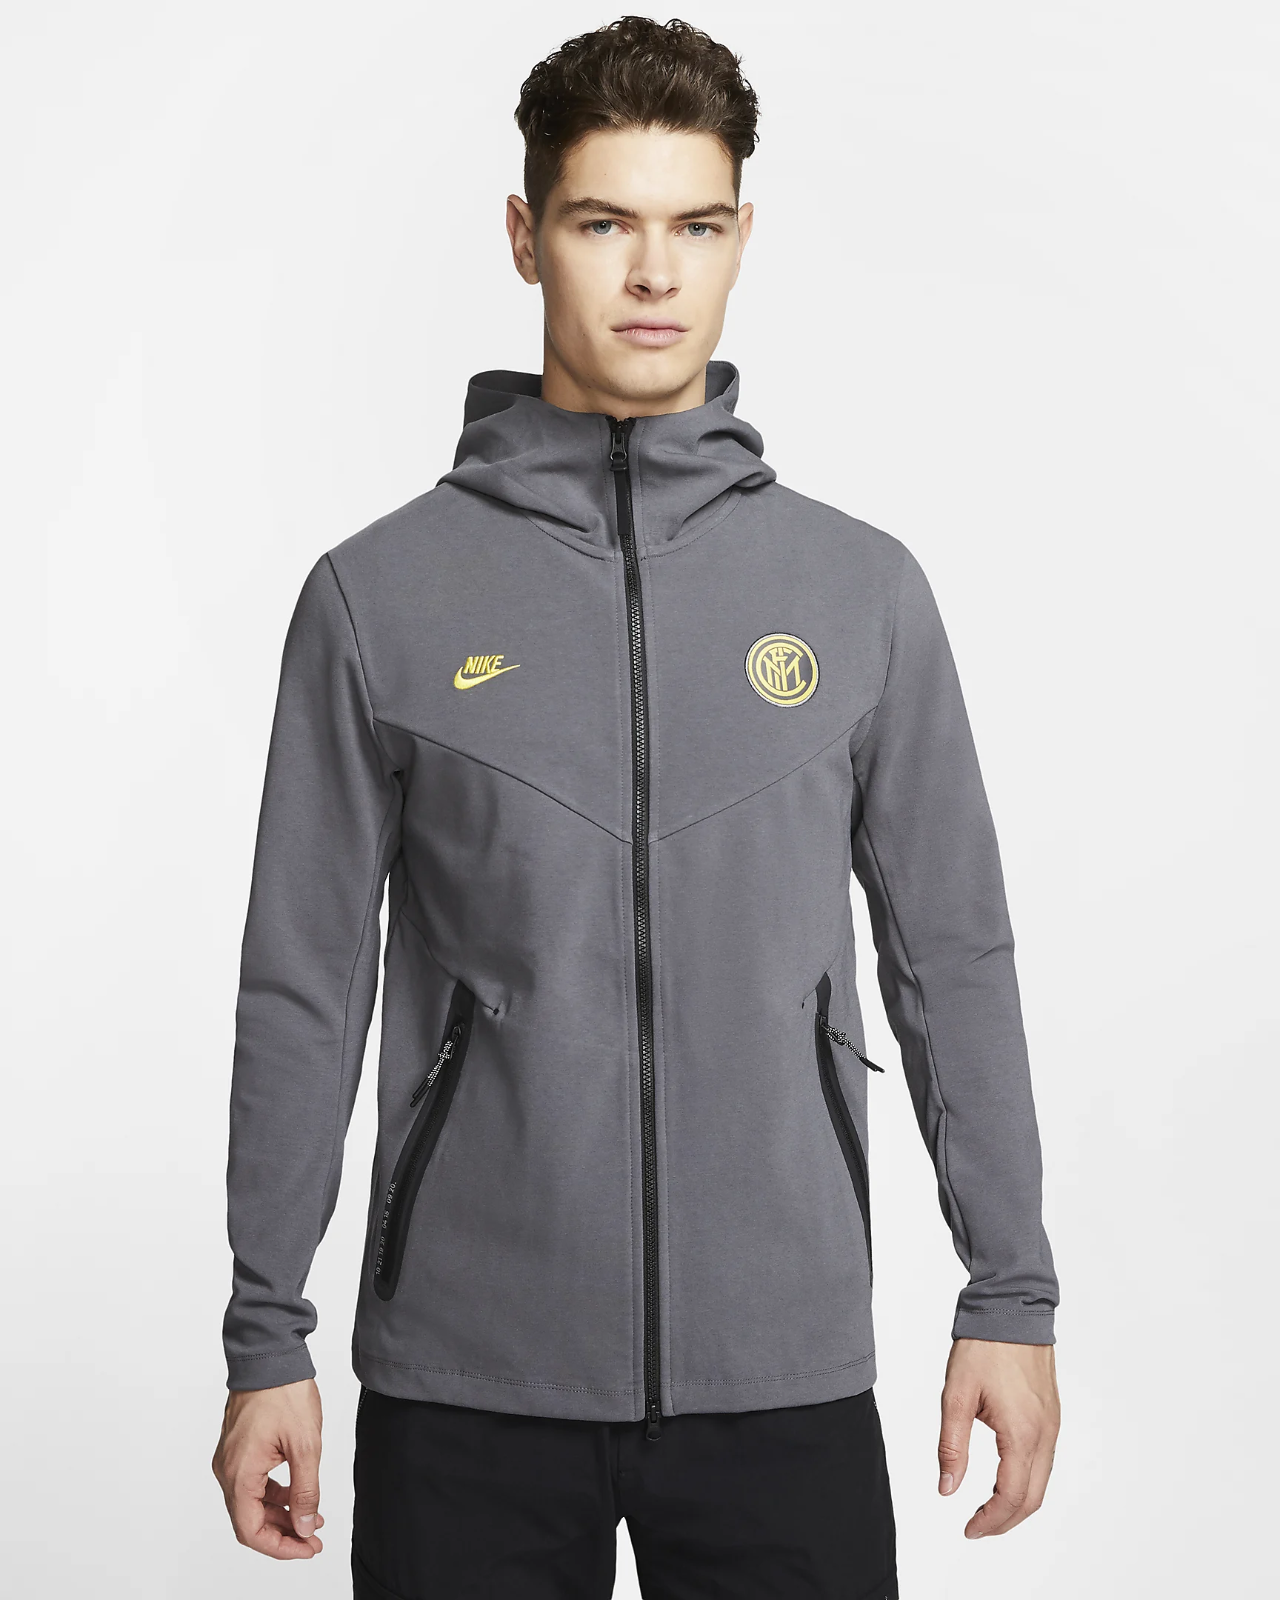 Men's Nike Inter Milan Tech Pack Hooded Jacket.    Size Small.    CI2129-025